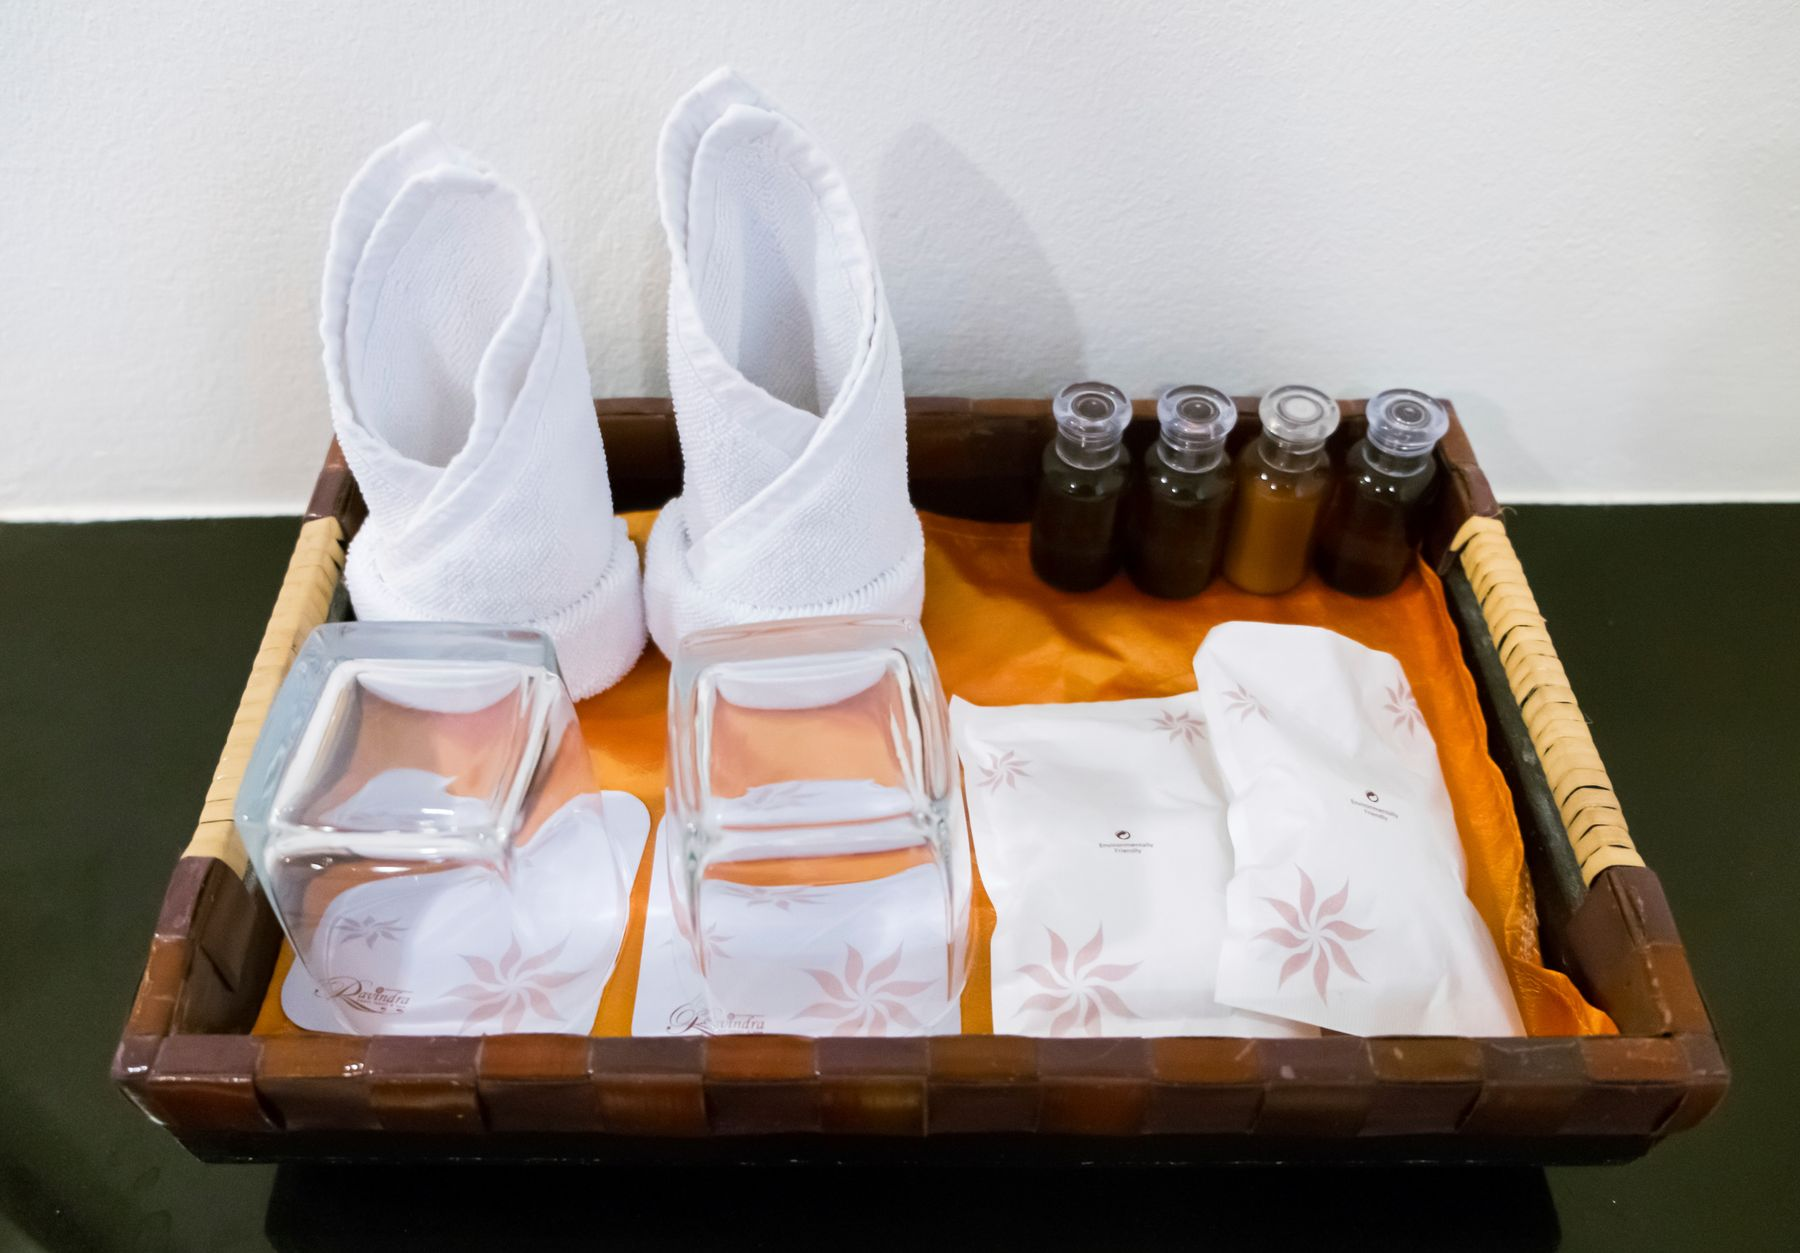 toiletries in a tray